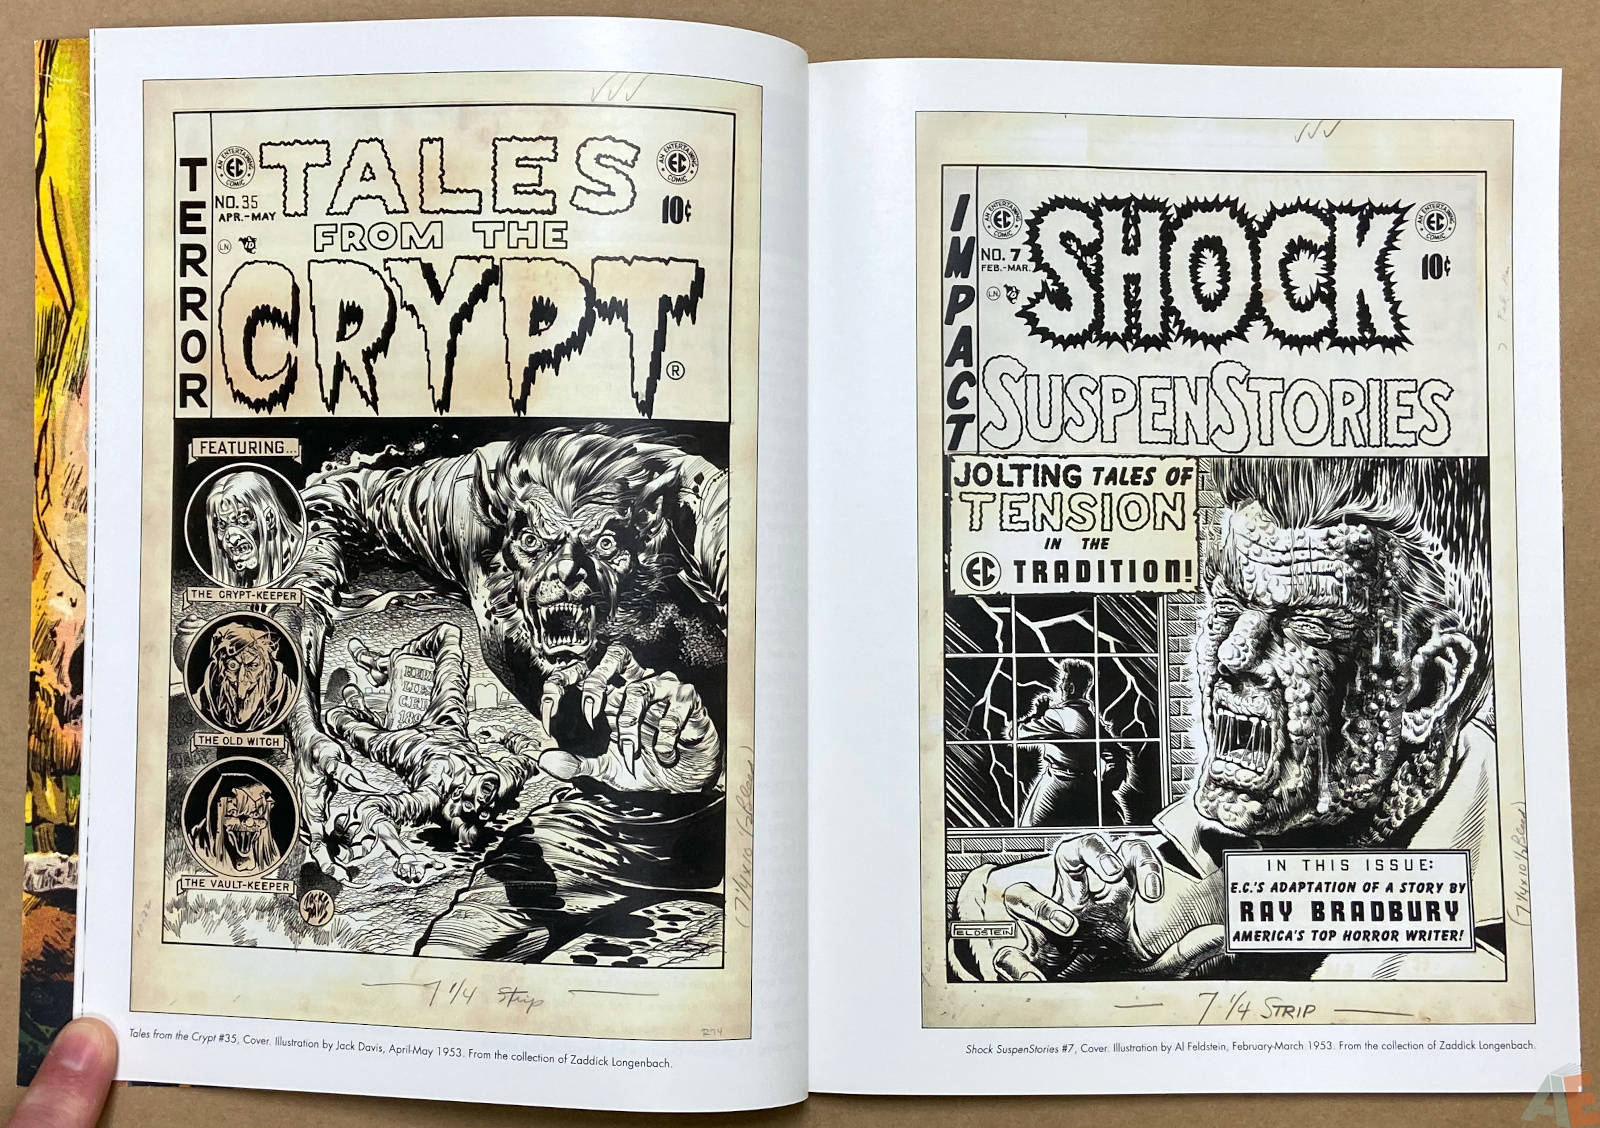 Tales From The Crypt Exhibition Catalog interior 4